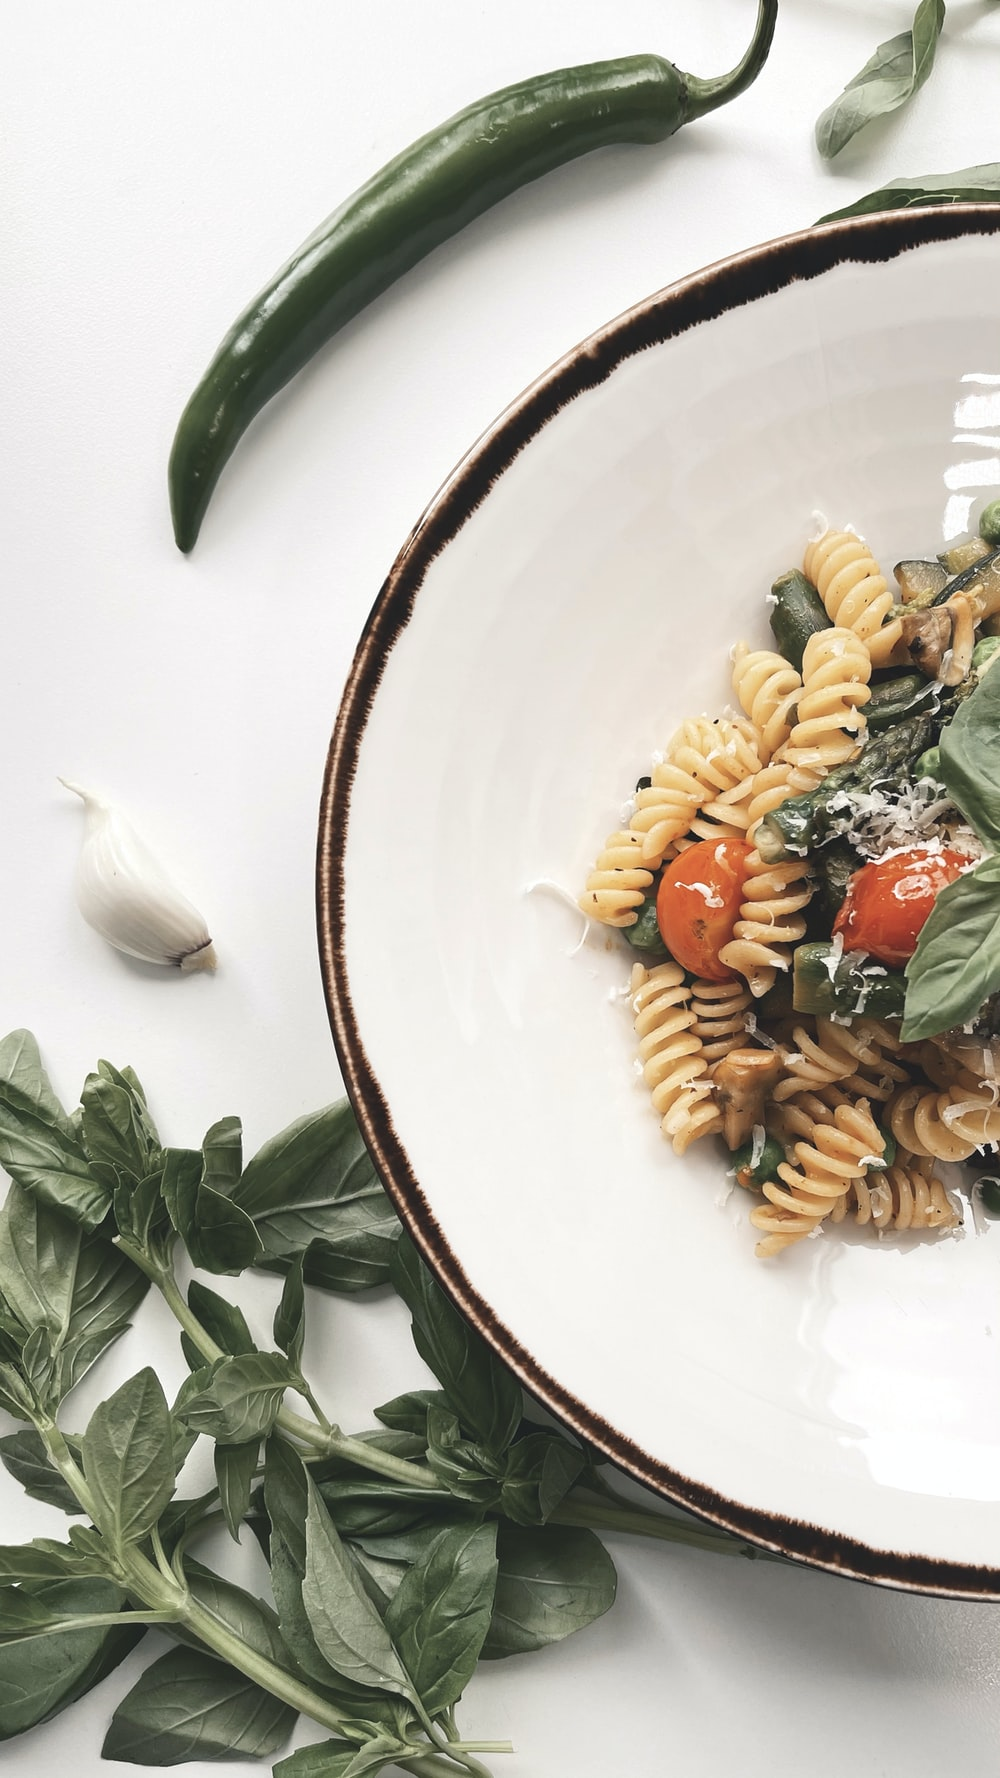 pasta with sliced tomato and green leaf on white ceramic plate